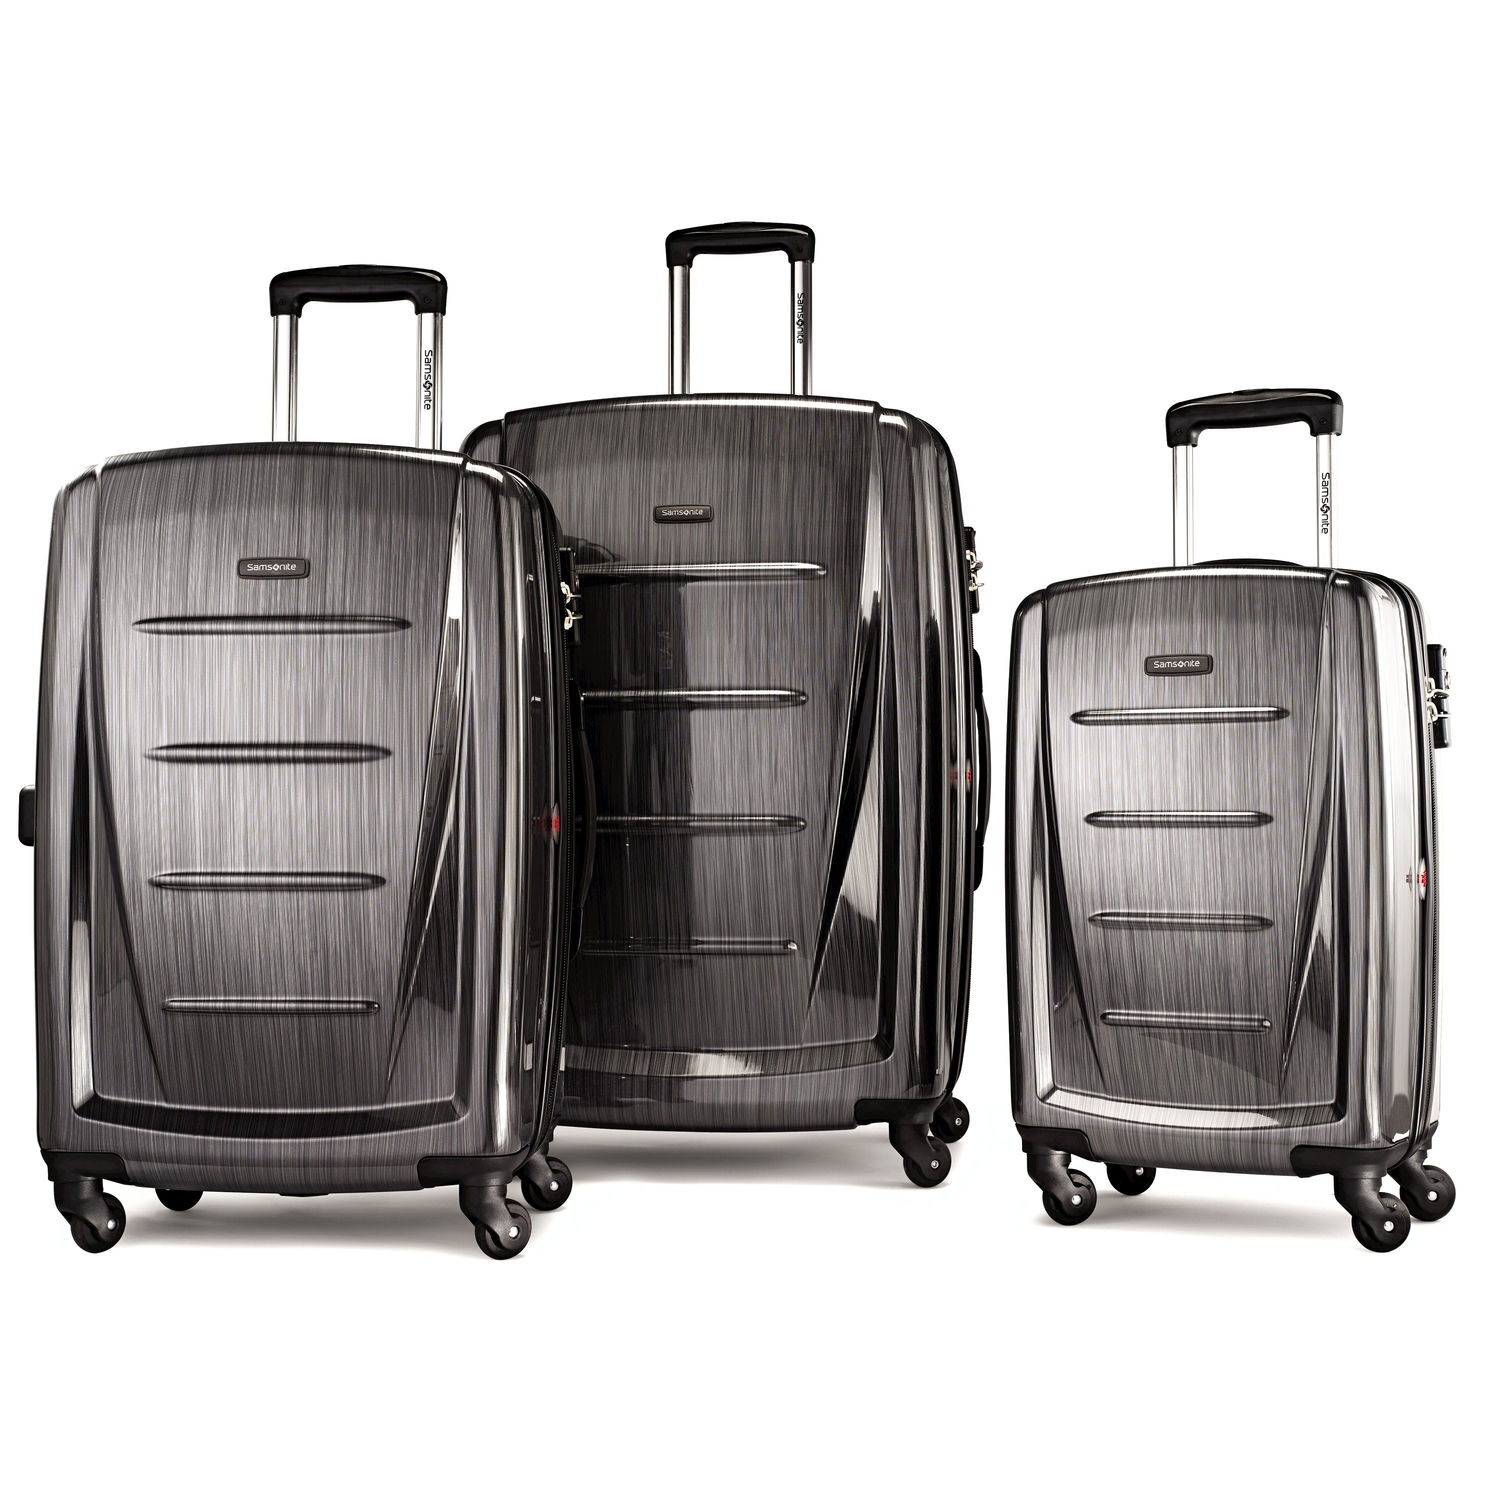 Samsonite Winfield 2 Fashion 3 Piece Spinner Set (Color: Charcoal)